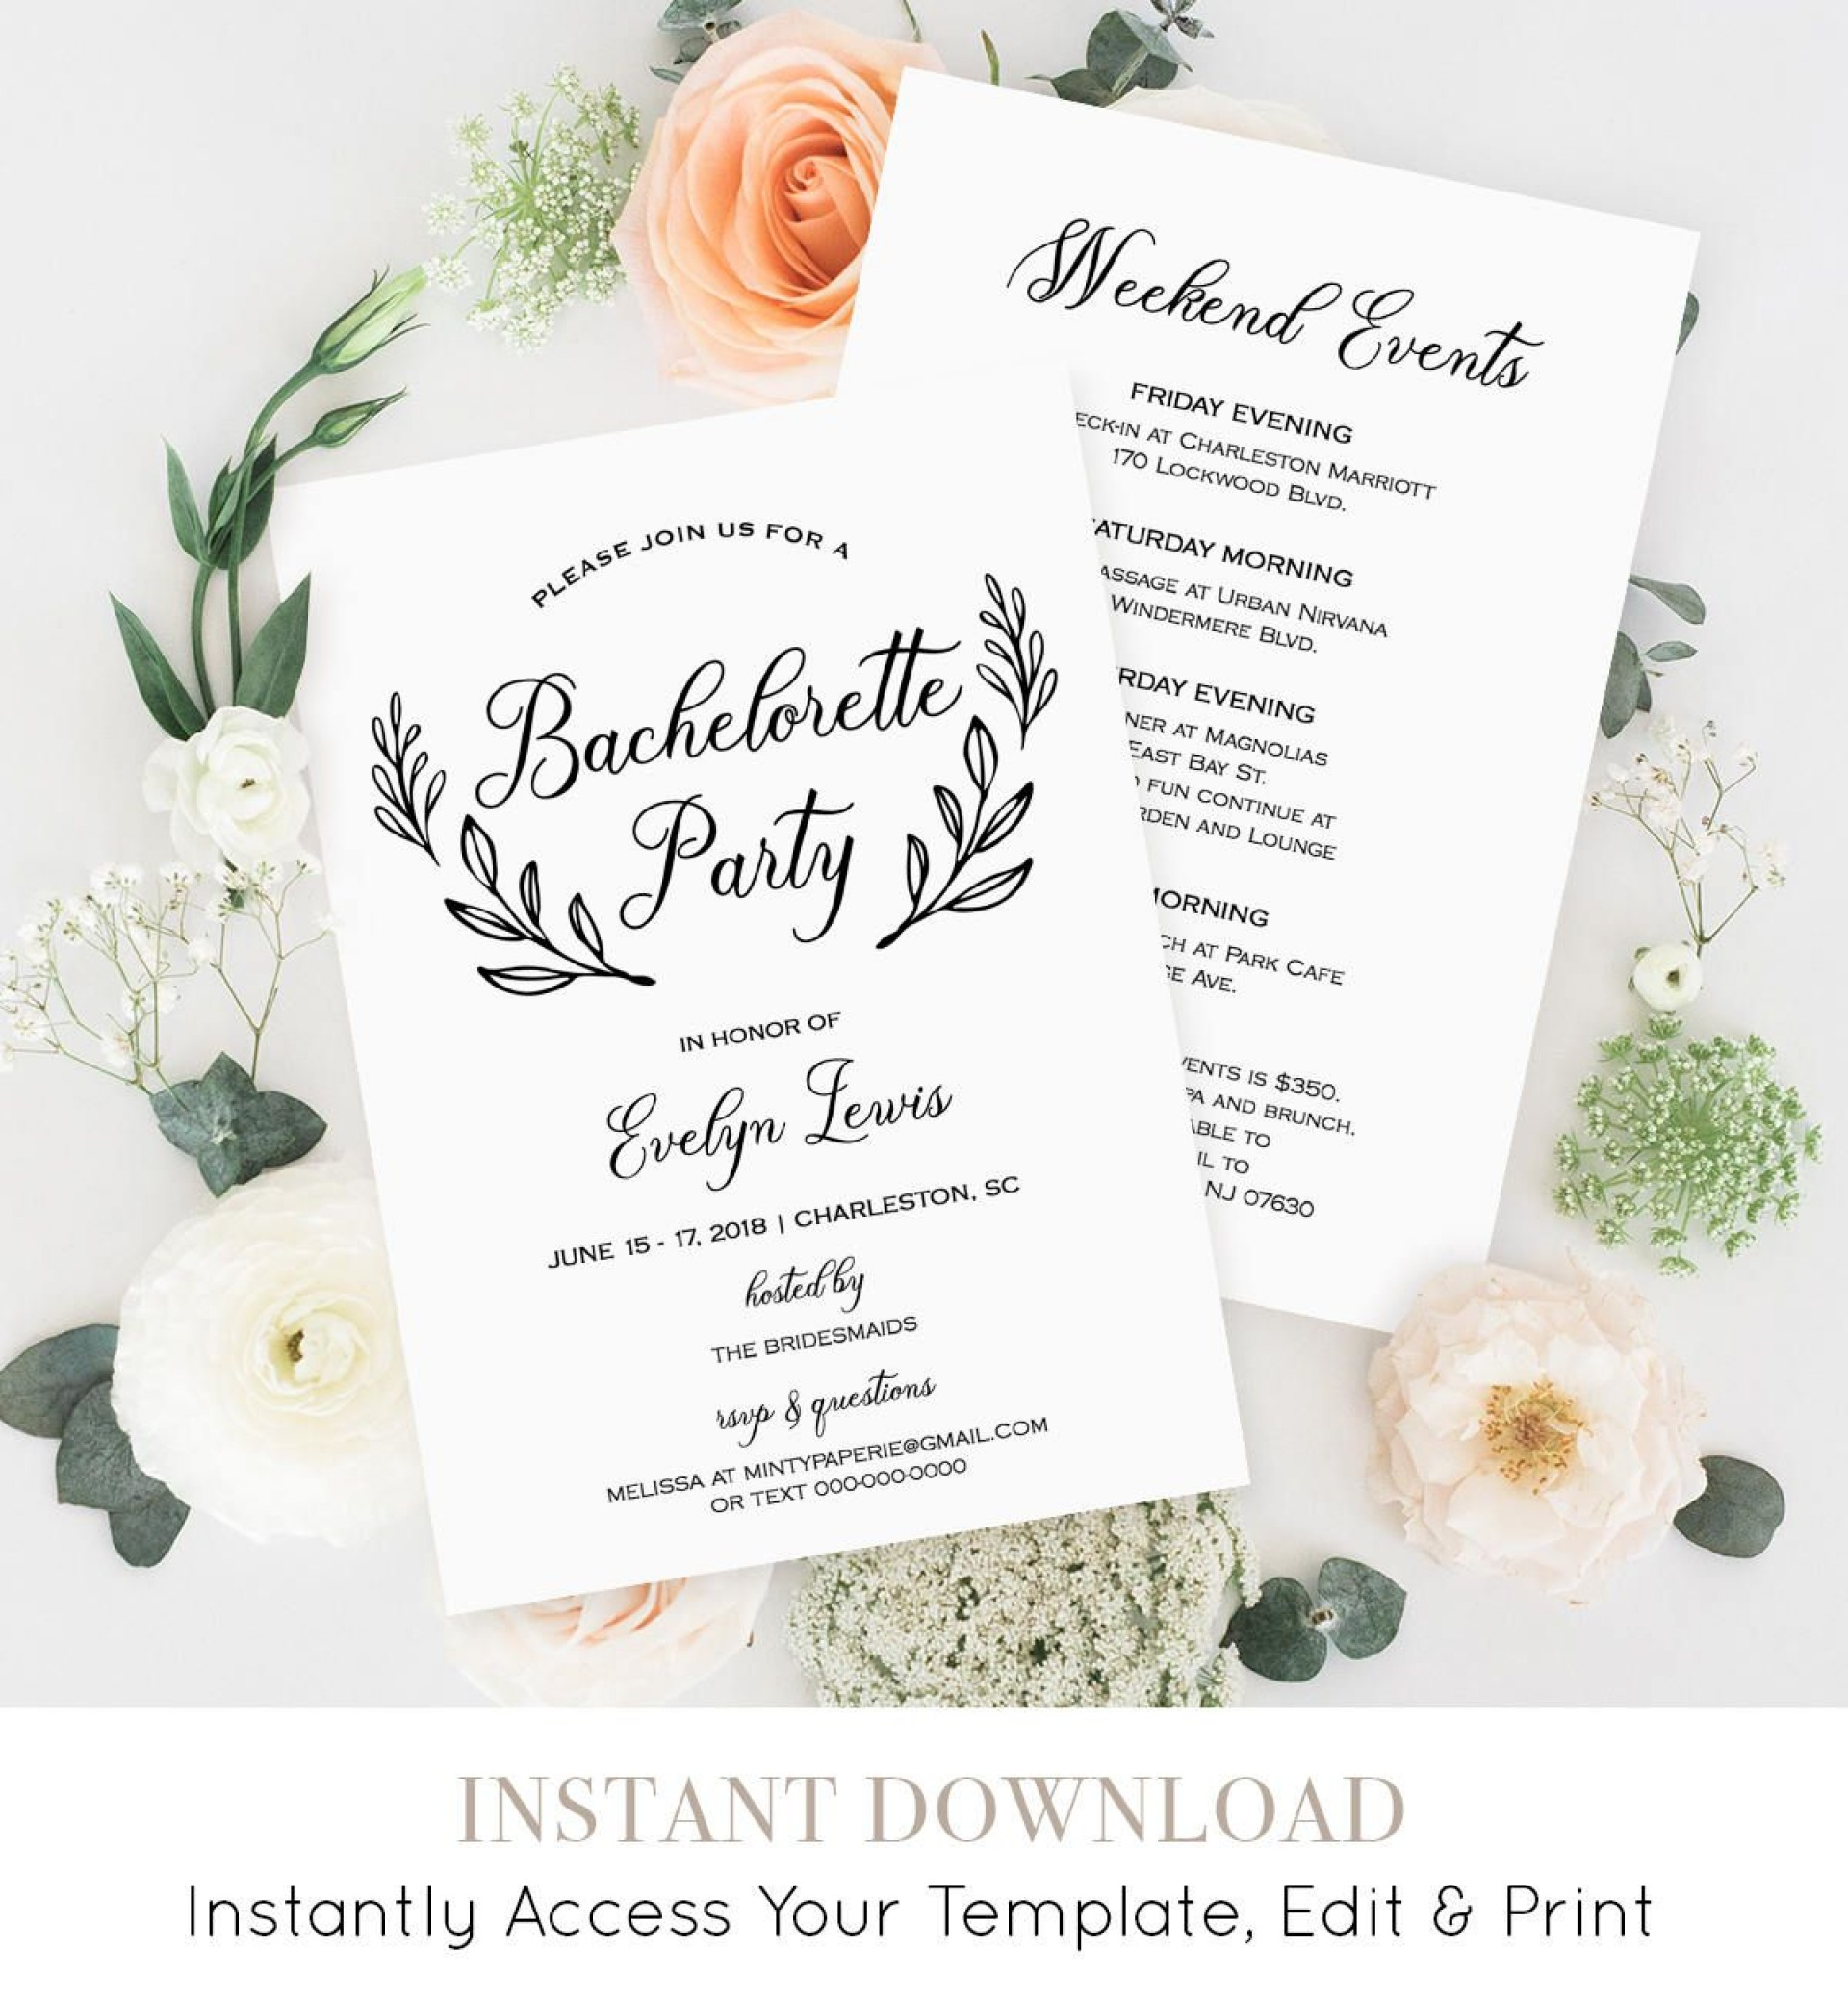 008 Incredible Bachelorette Party Itinerary Template Free Inspiration  Download1920